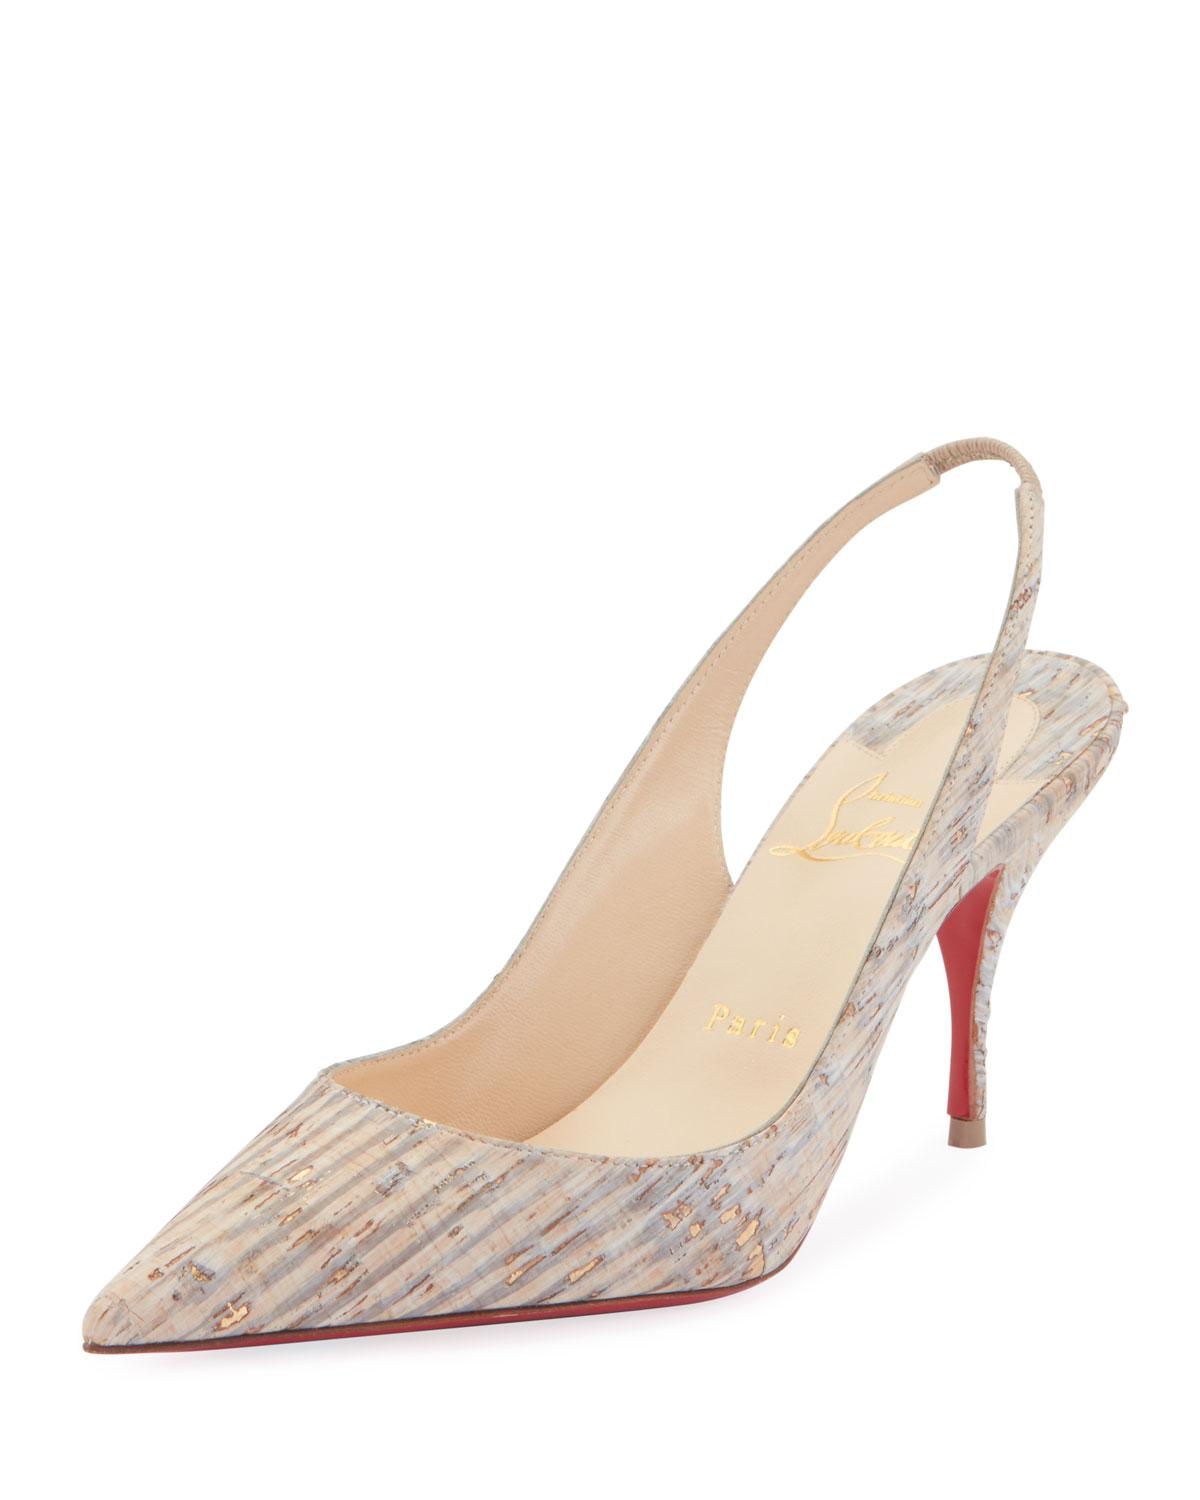 2761c938a10 Lyst - Christian Louboutin Clare Cork Red Sole Slingback Pumps in ...